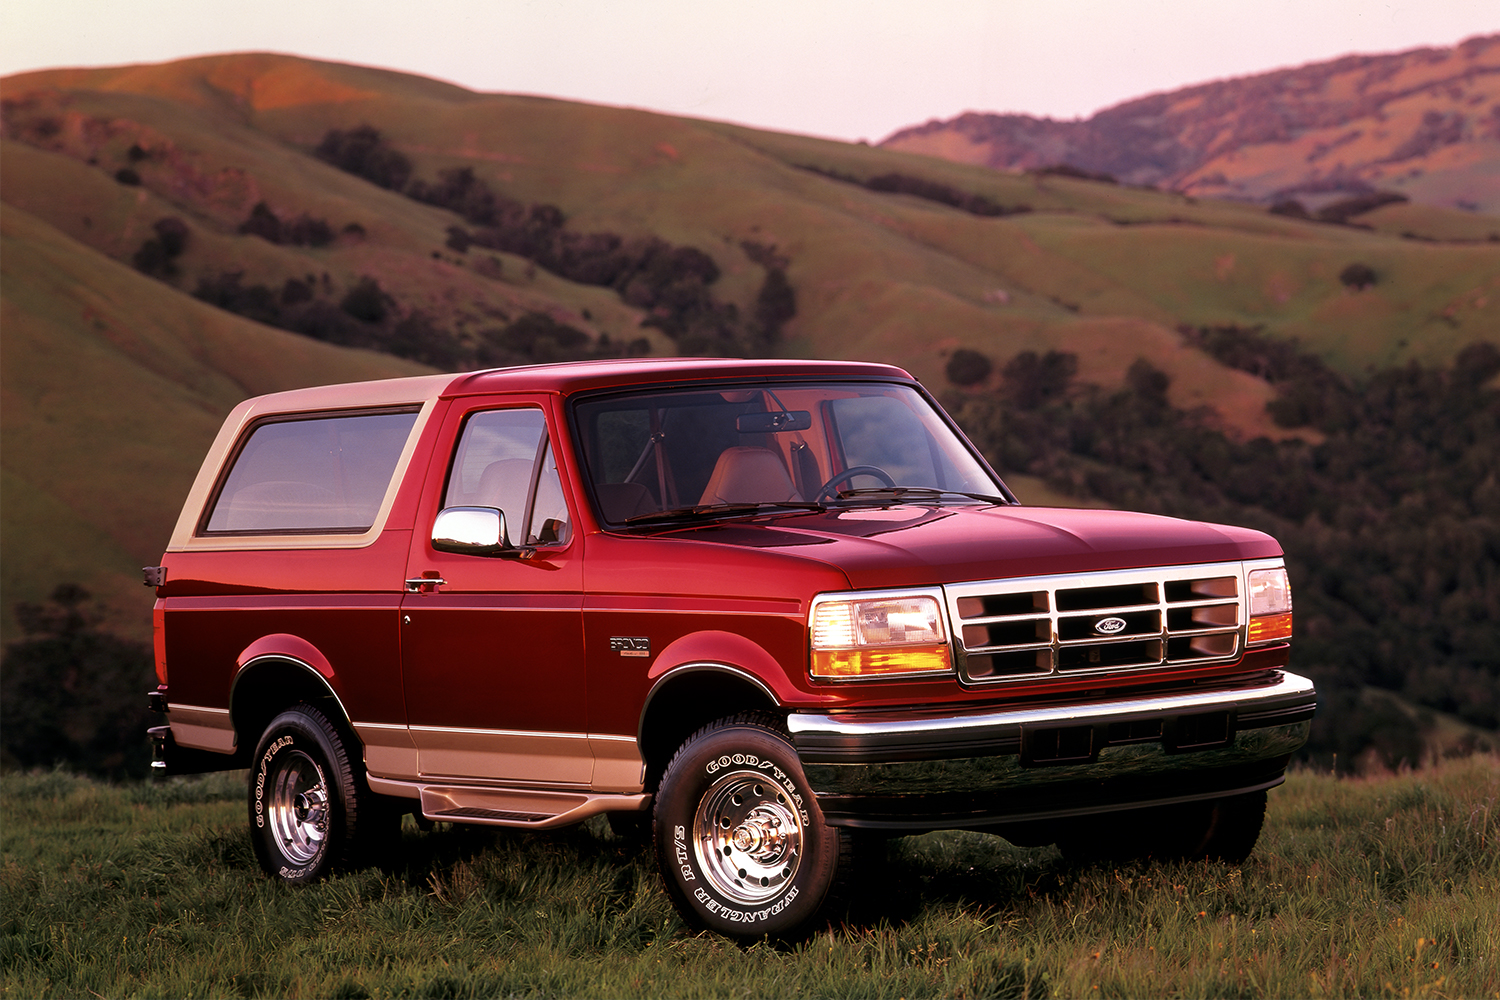 1996 Ford Bronco Eddie Bauer edition on a hillside